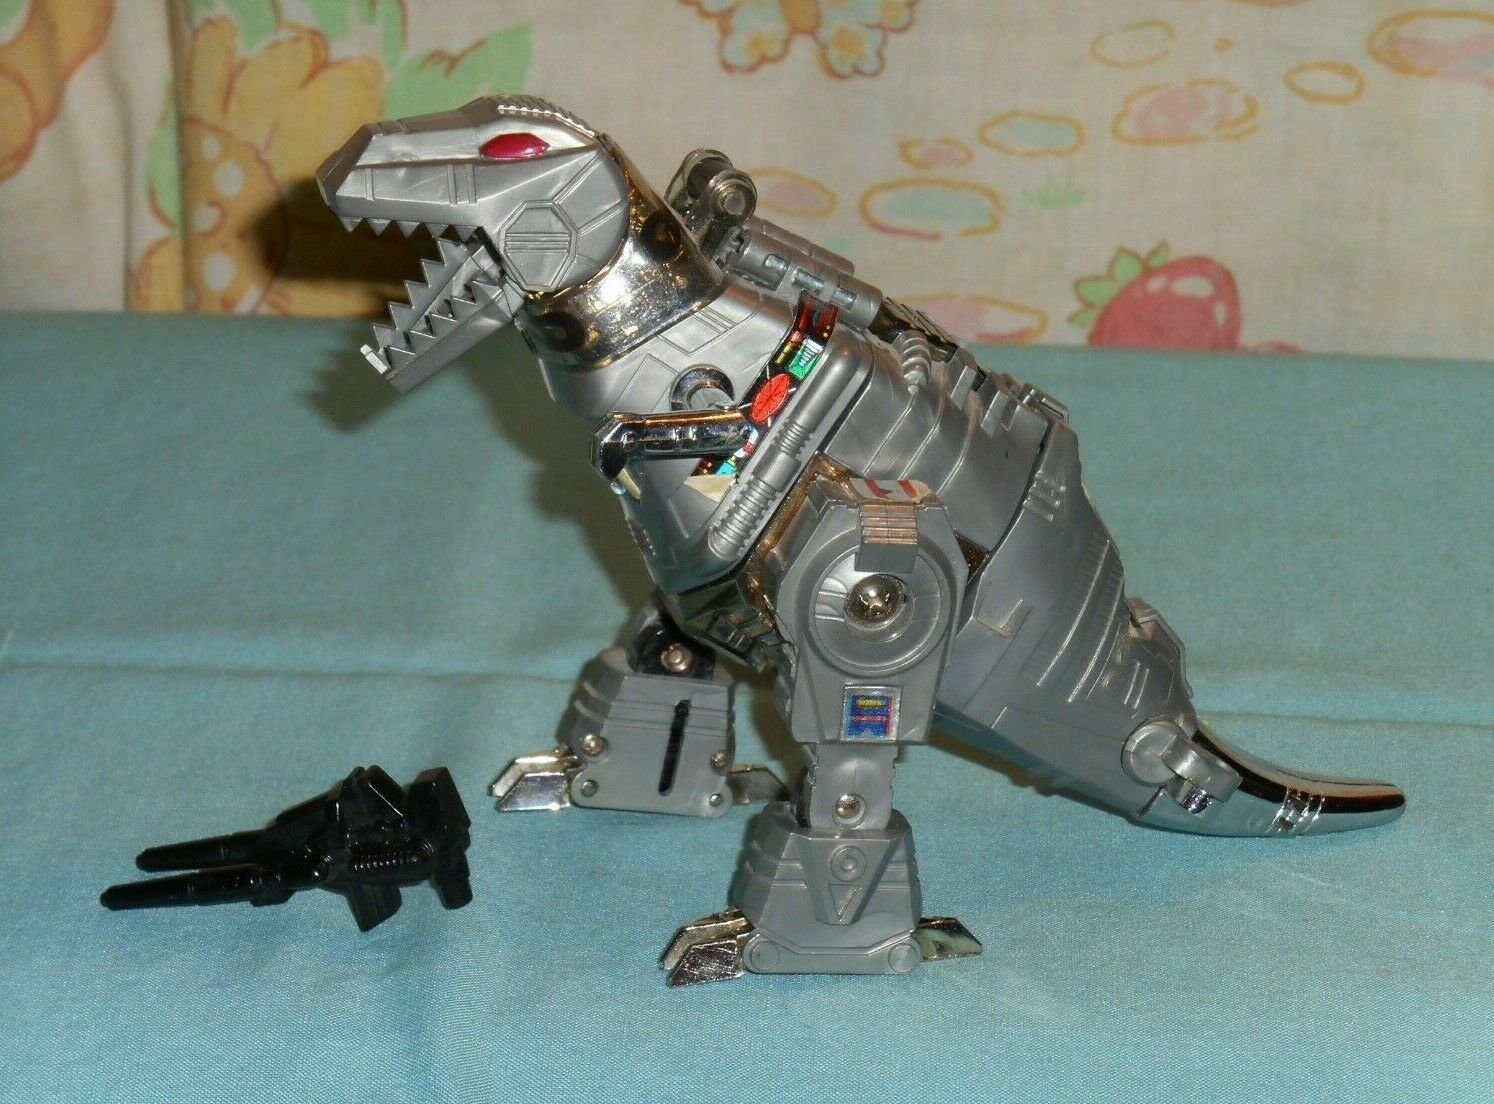 Vintage TRANSFORMING DINOSAUR ROBOT with gun